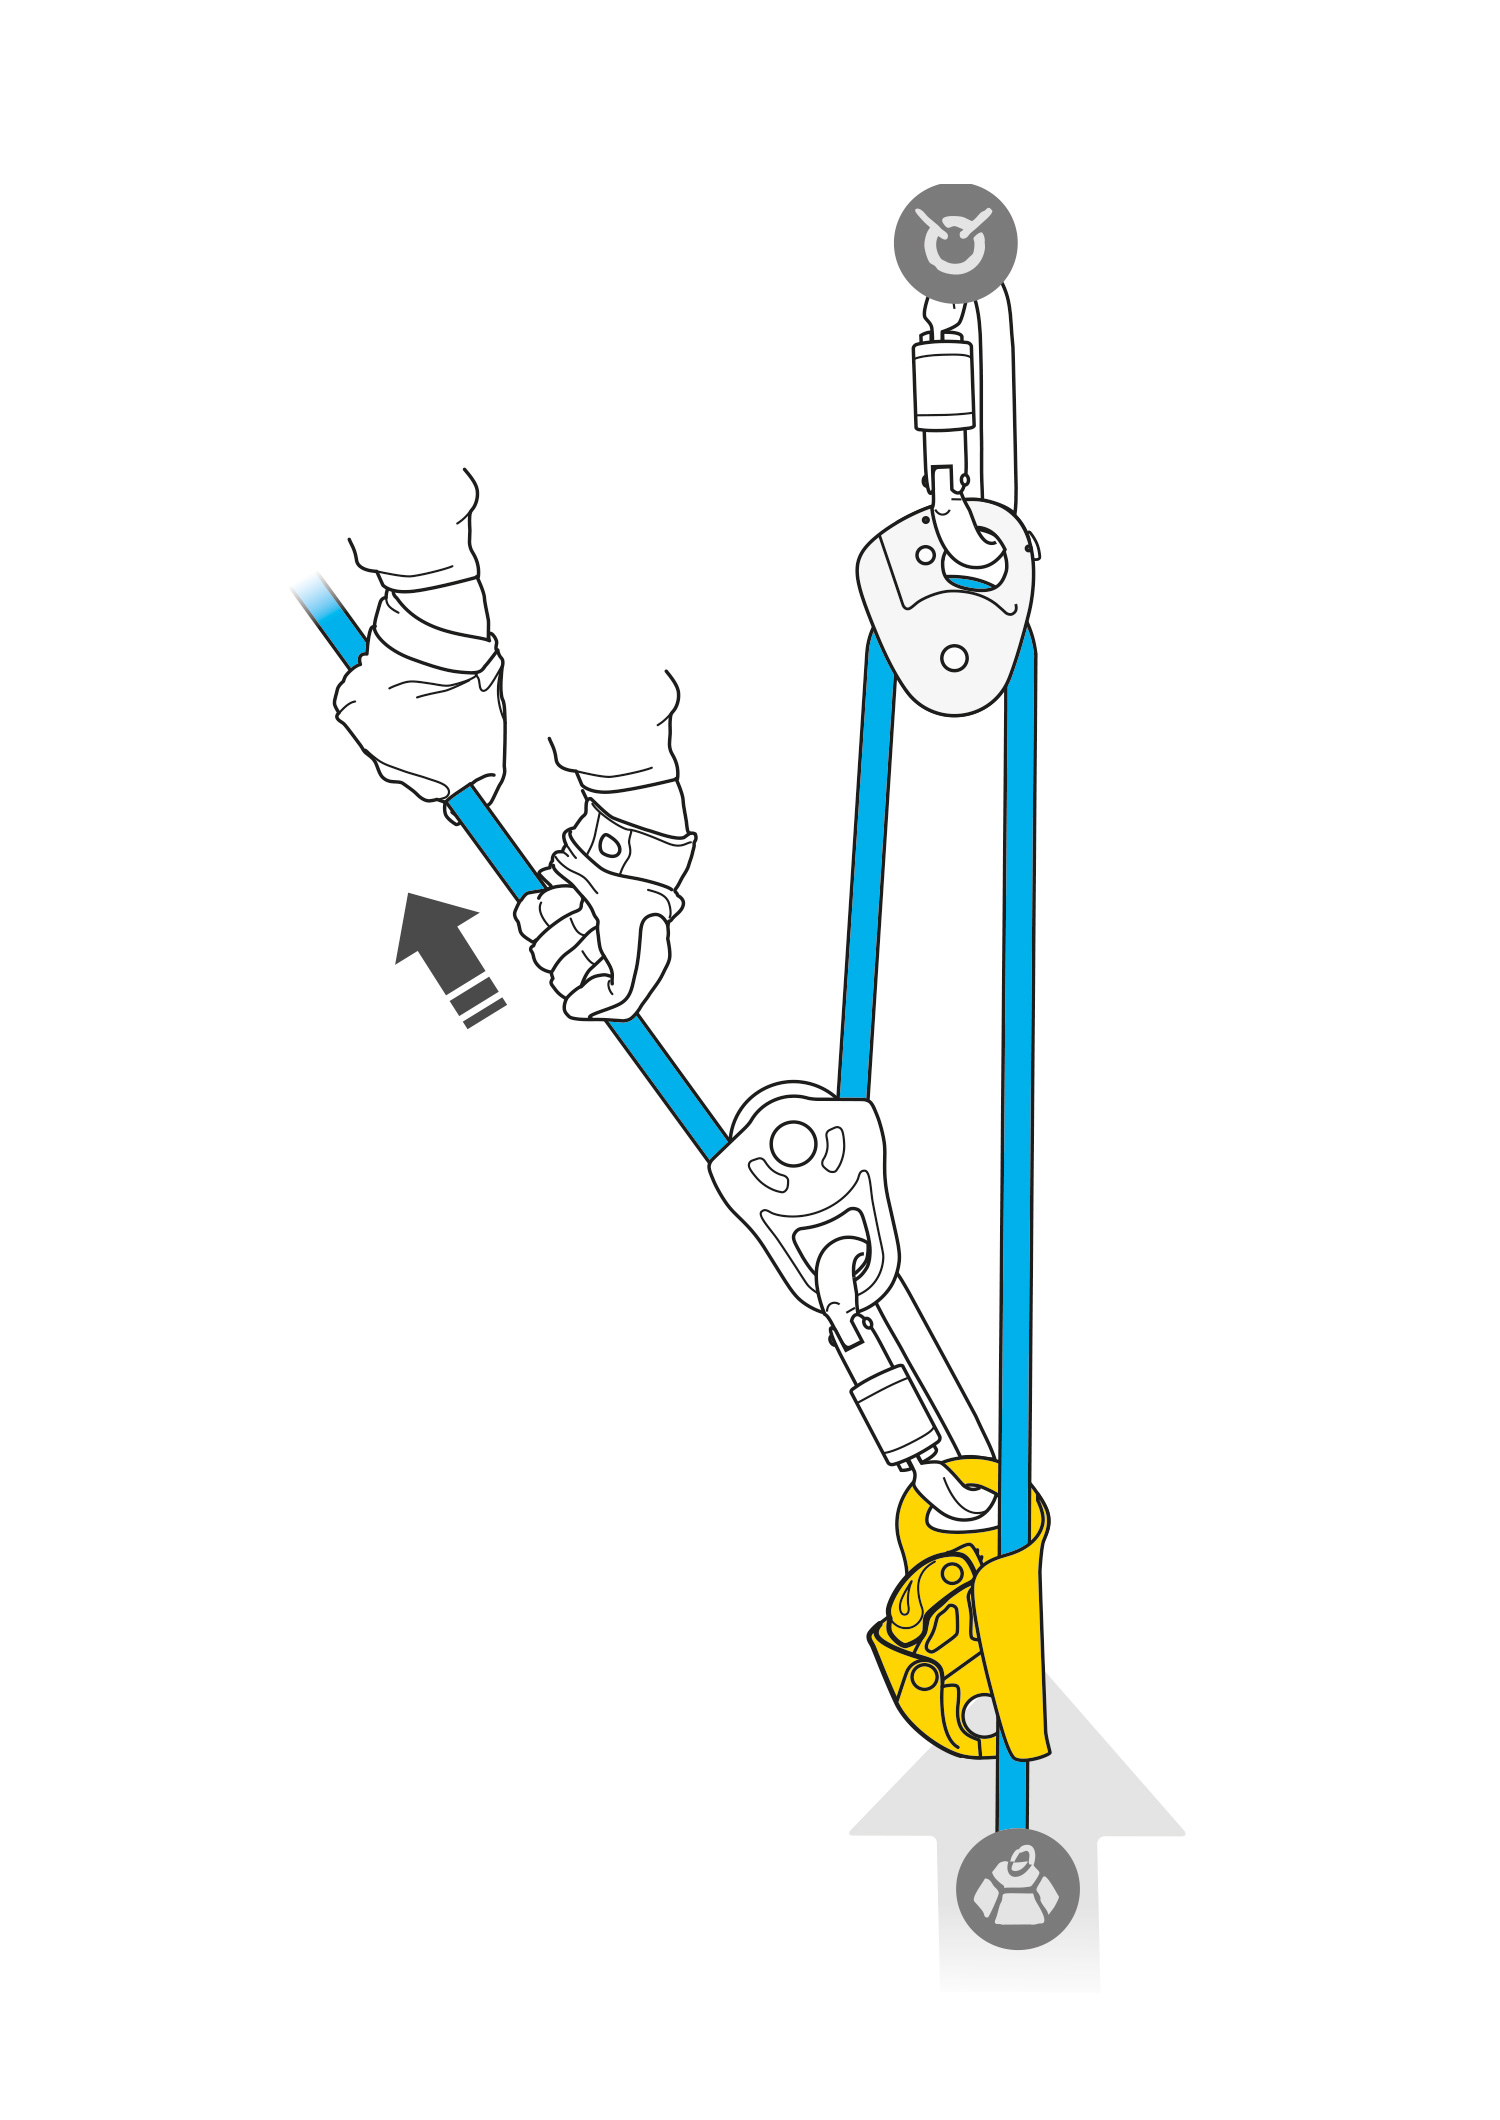 Pulley system with a BASIC ascender